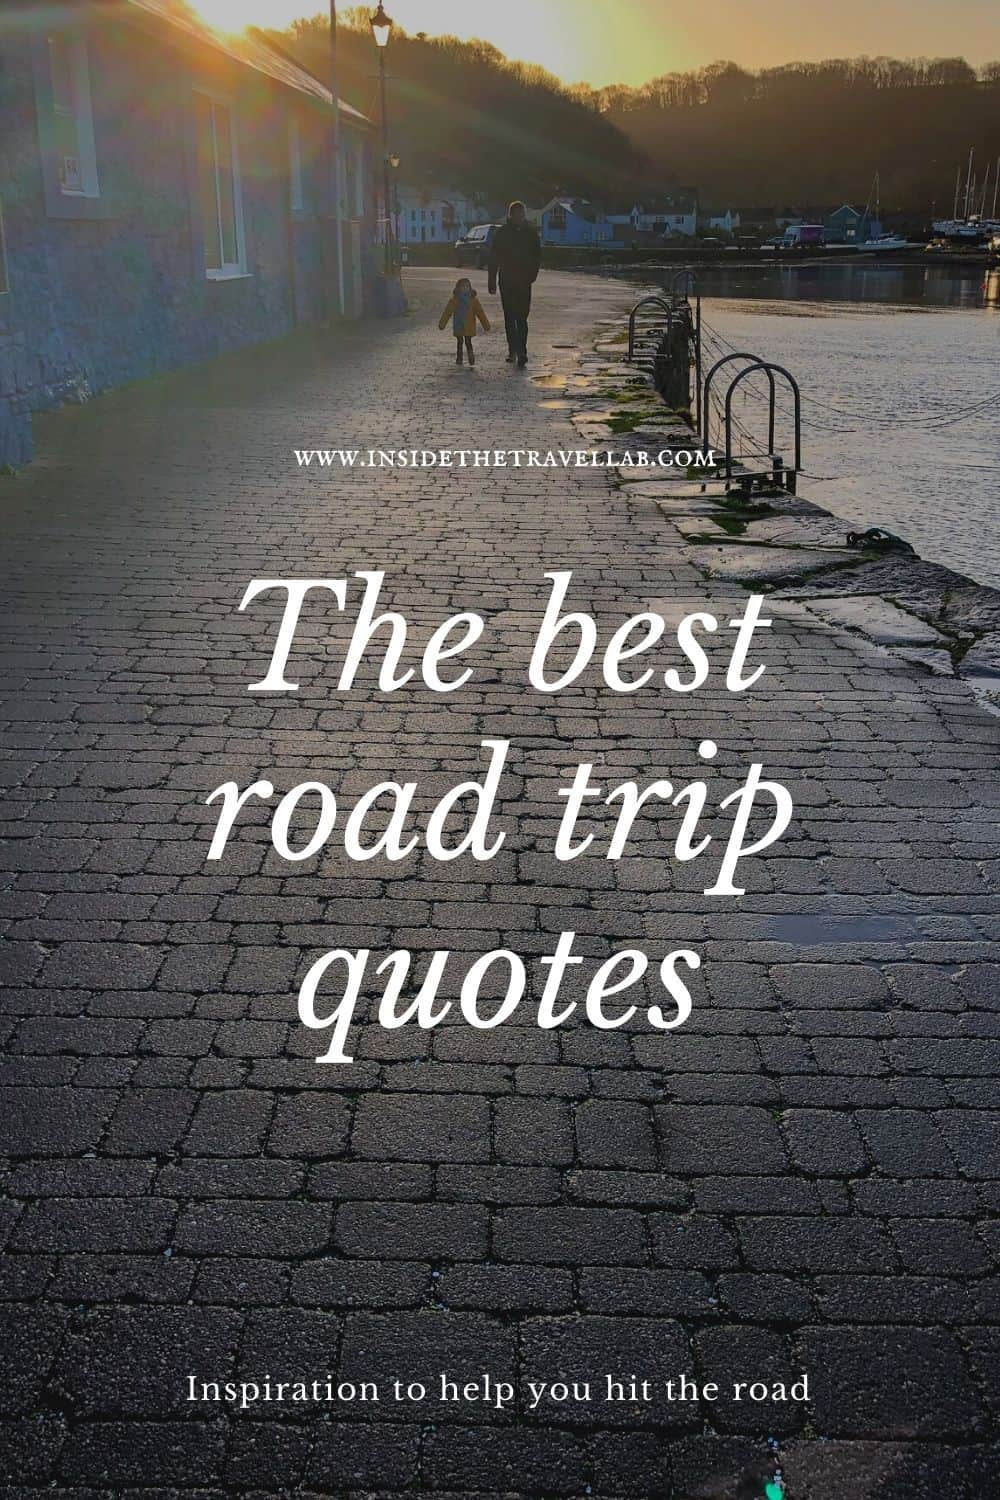 The best road trip quotes pinterest image